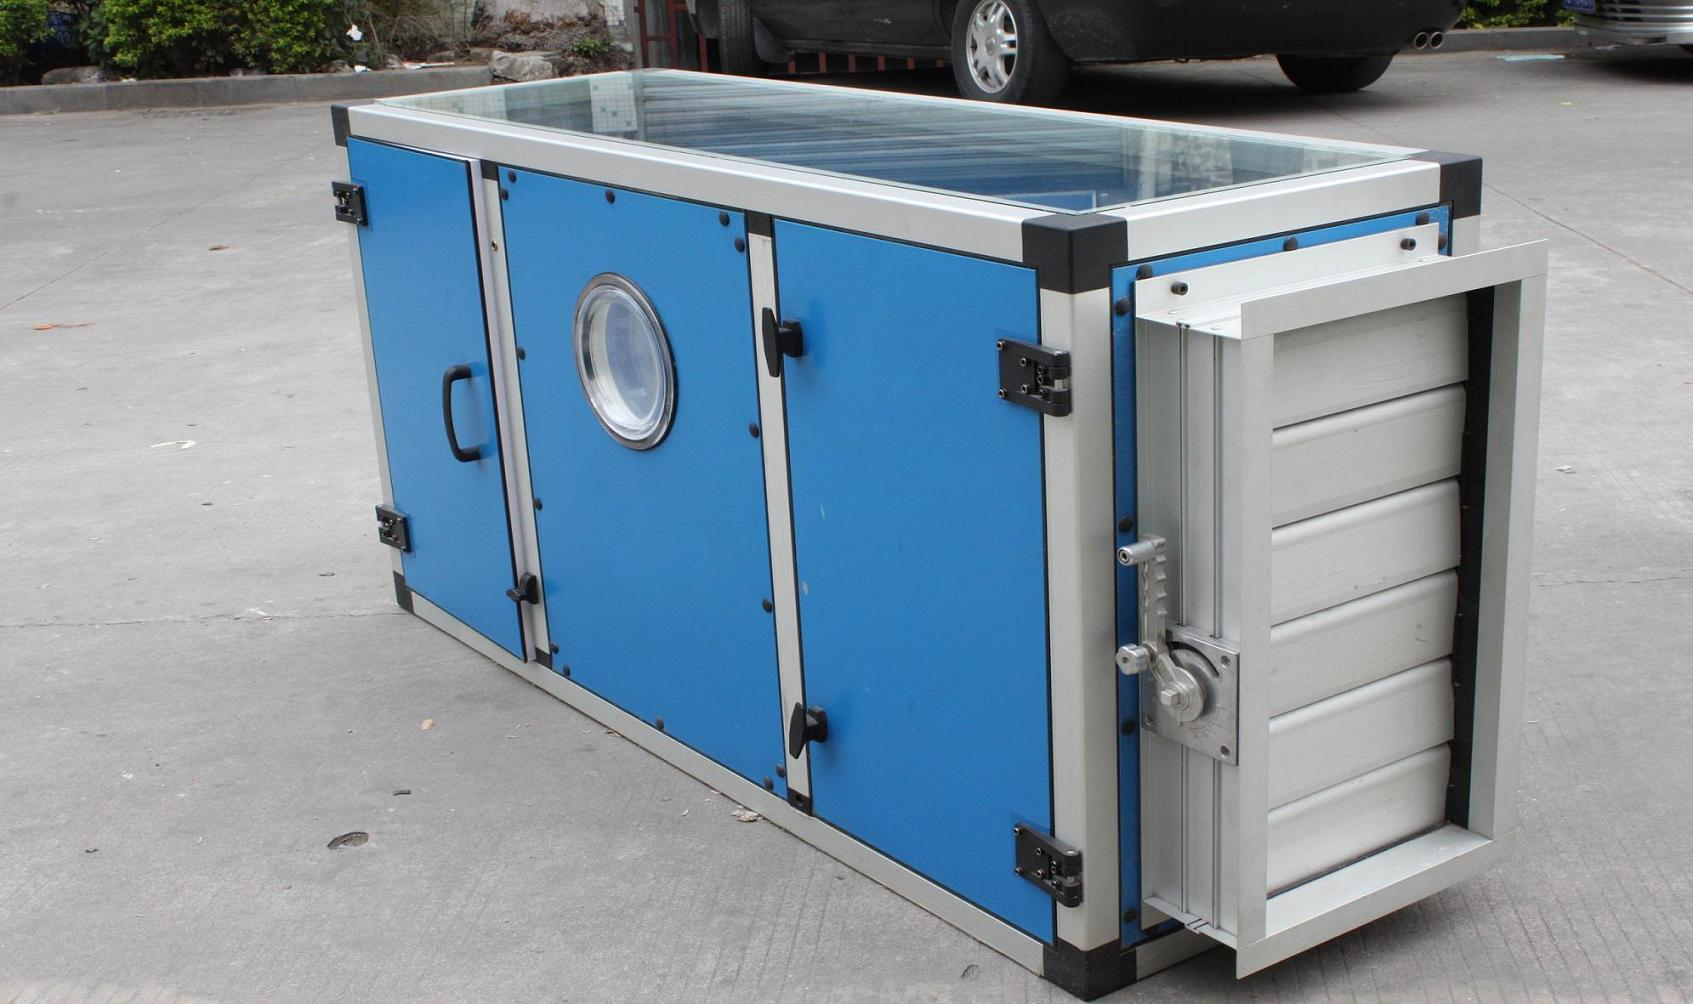 Air Handling System : Aluminum extrusion material for air handling unit body